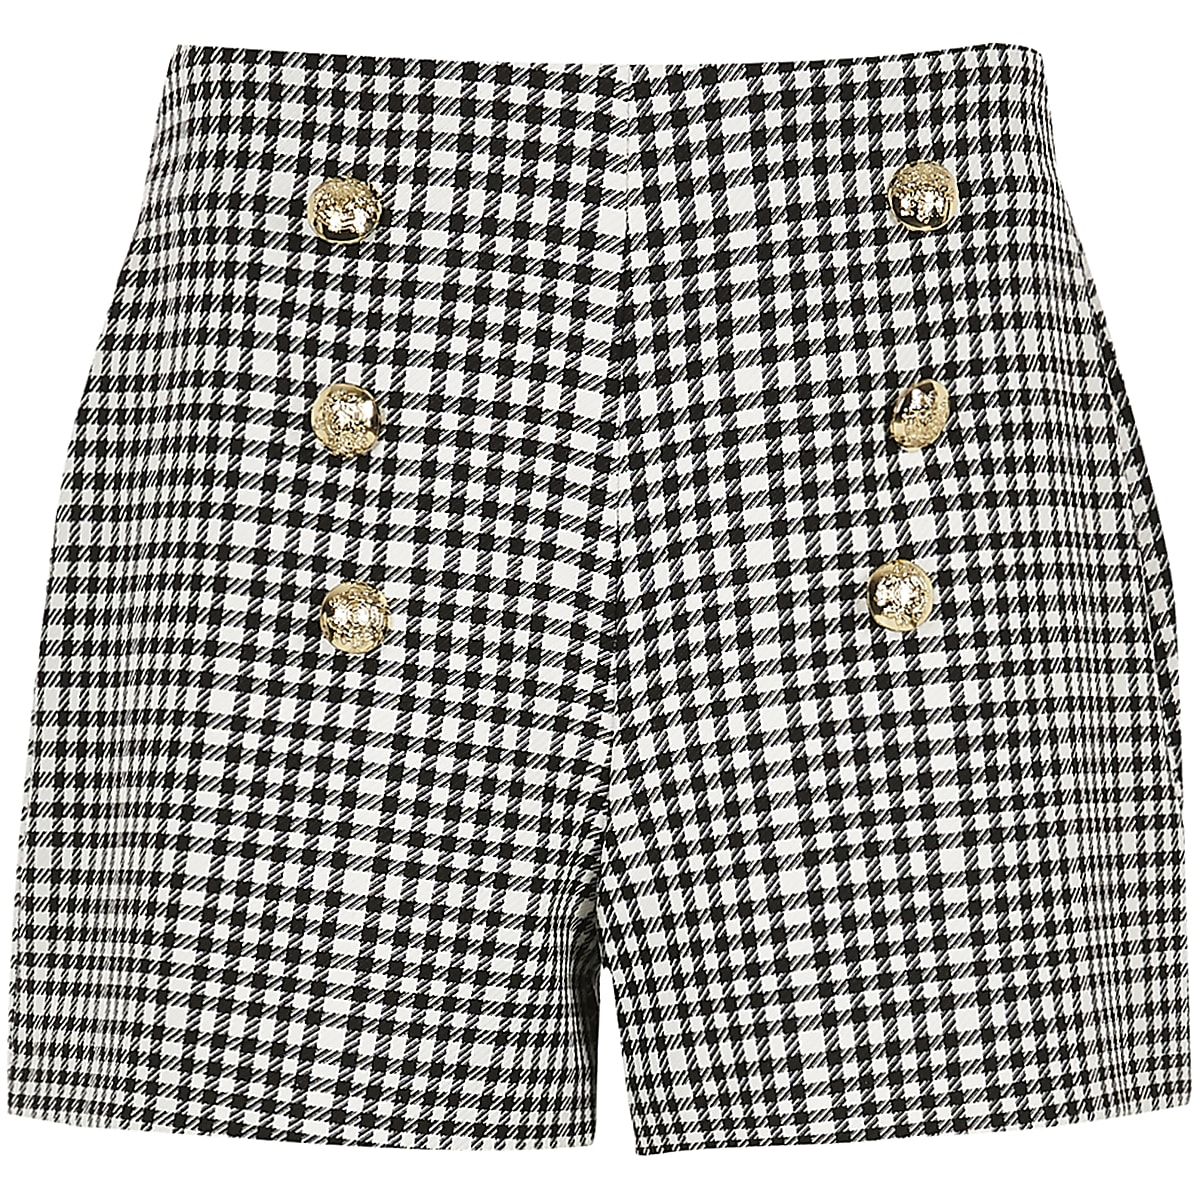 Girls monochrome gingham military shorts